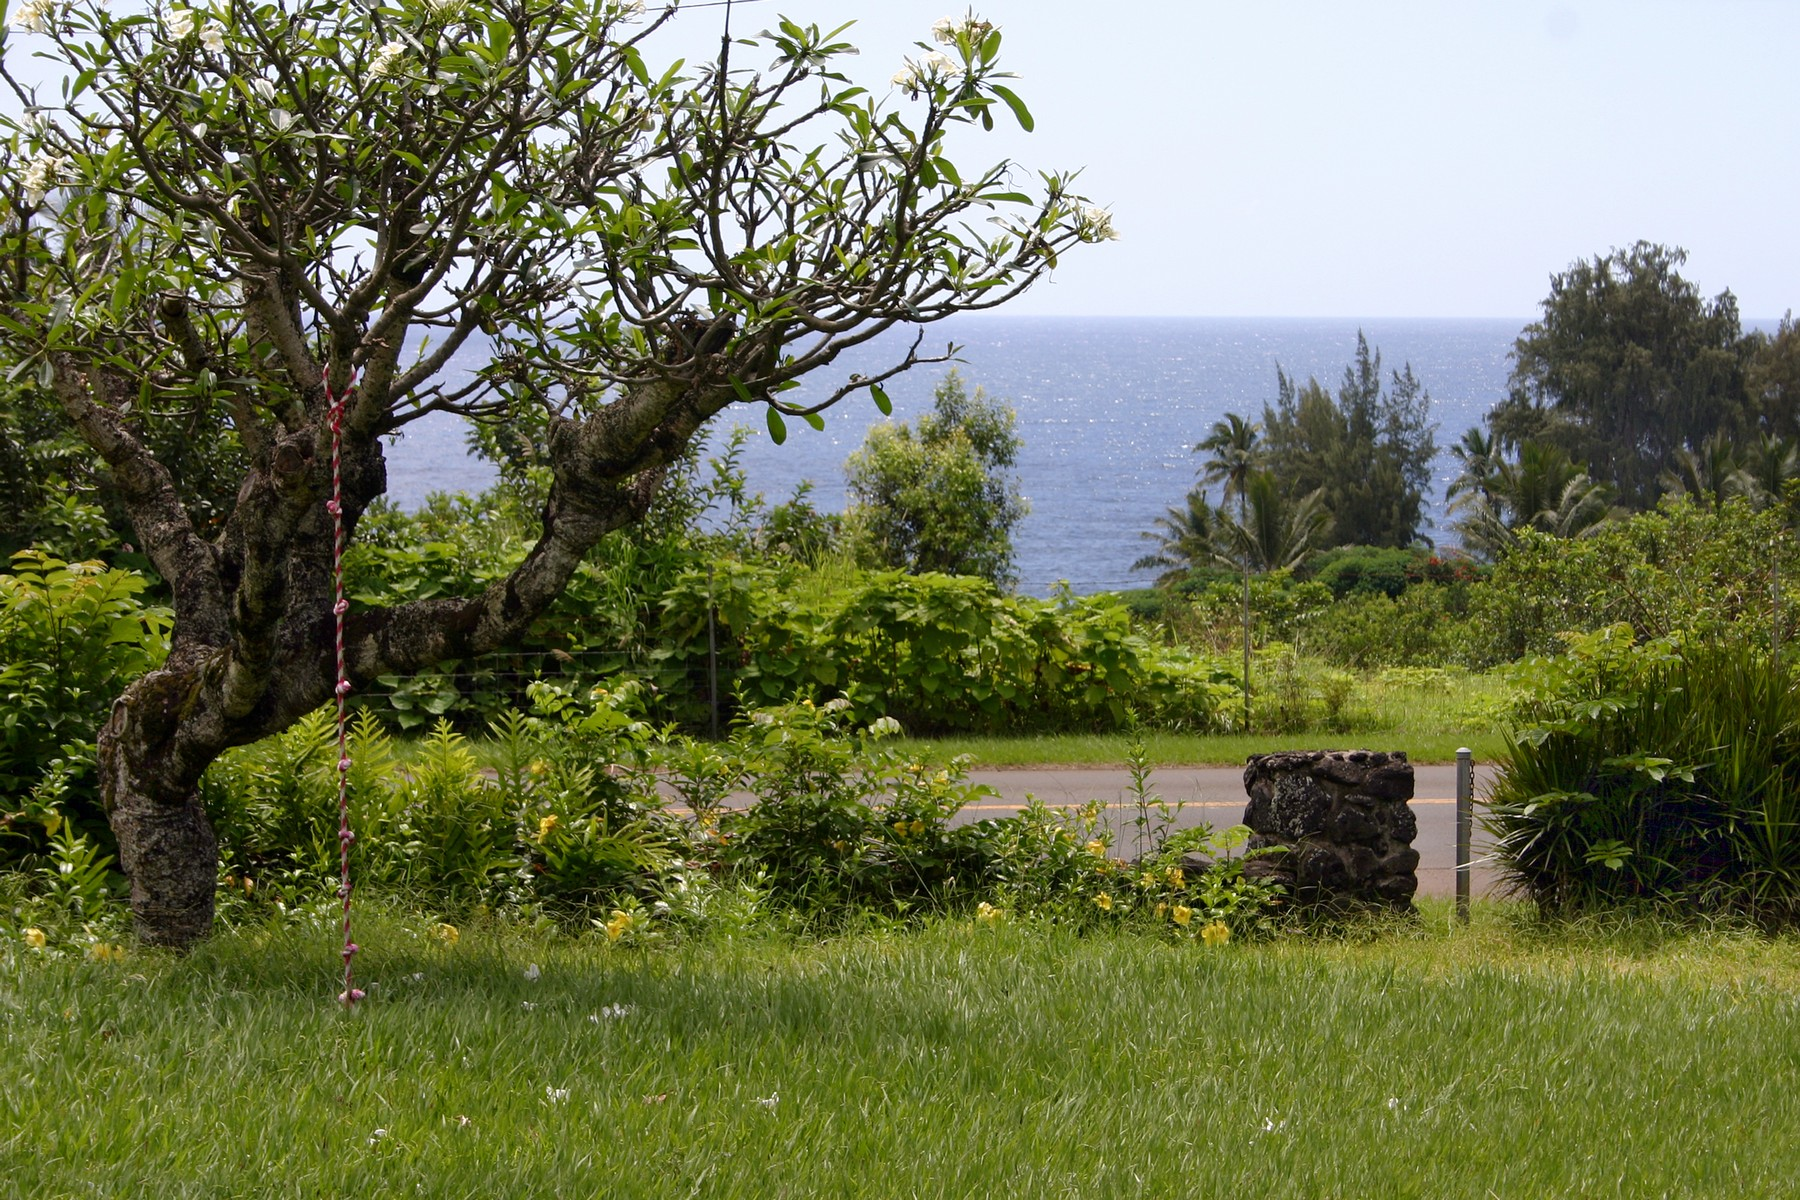 Single Family Home for Sale at Rare Commercial Property in Hana Town 5210 Hana Highway Hana, Hawaii 96713 United States